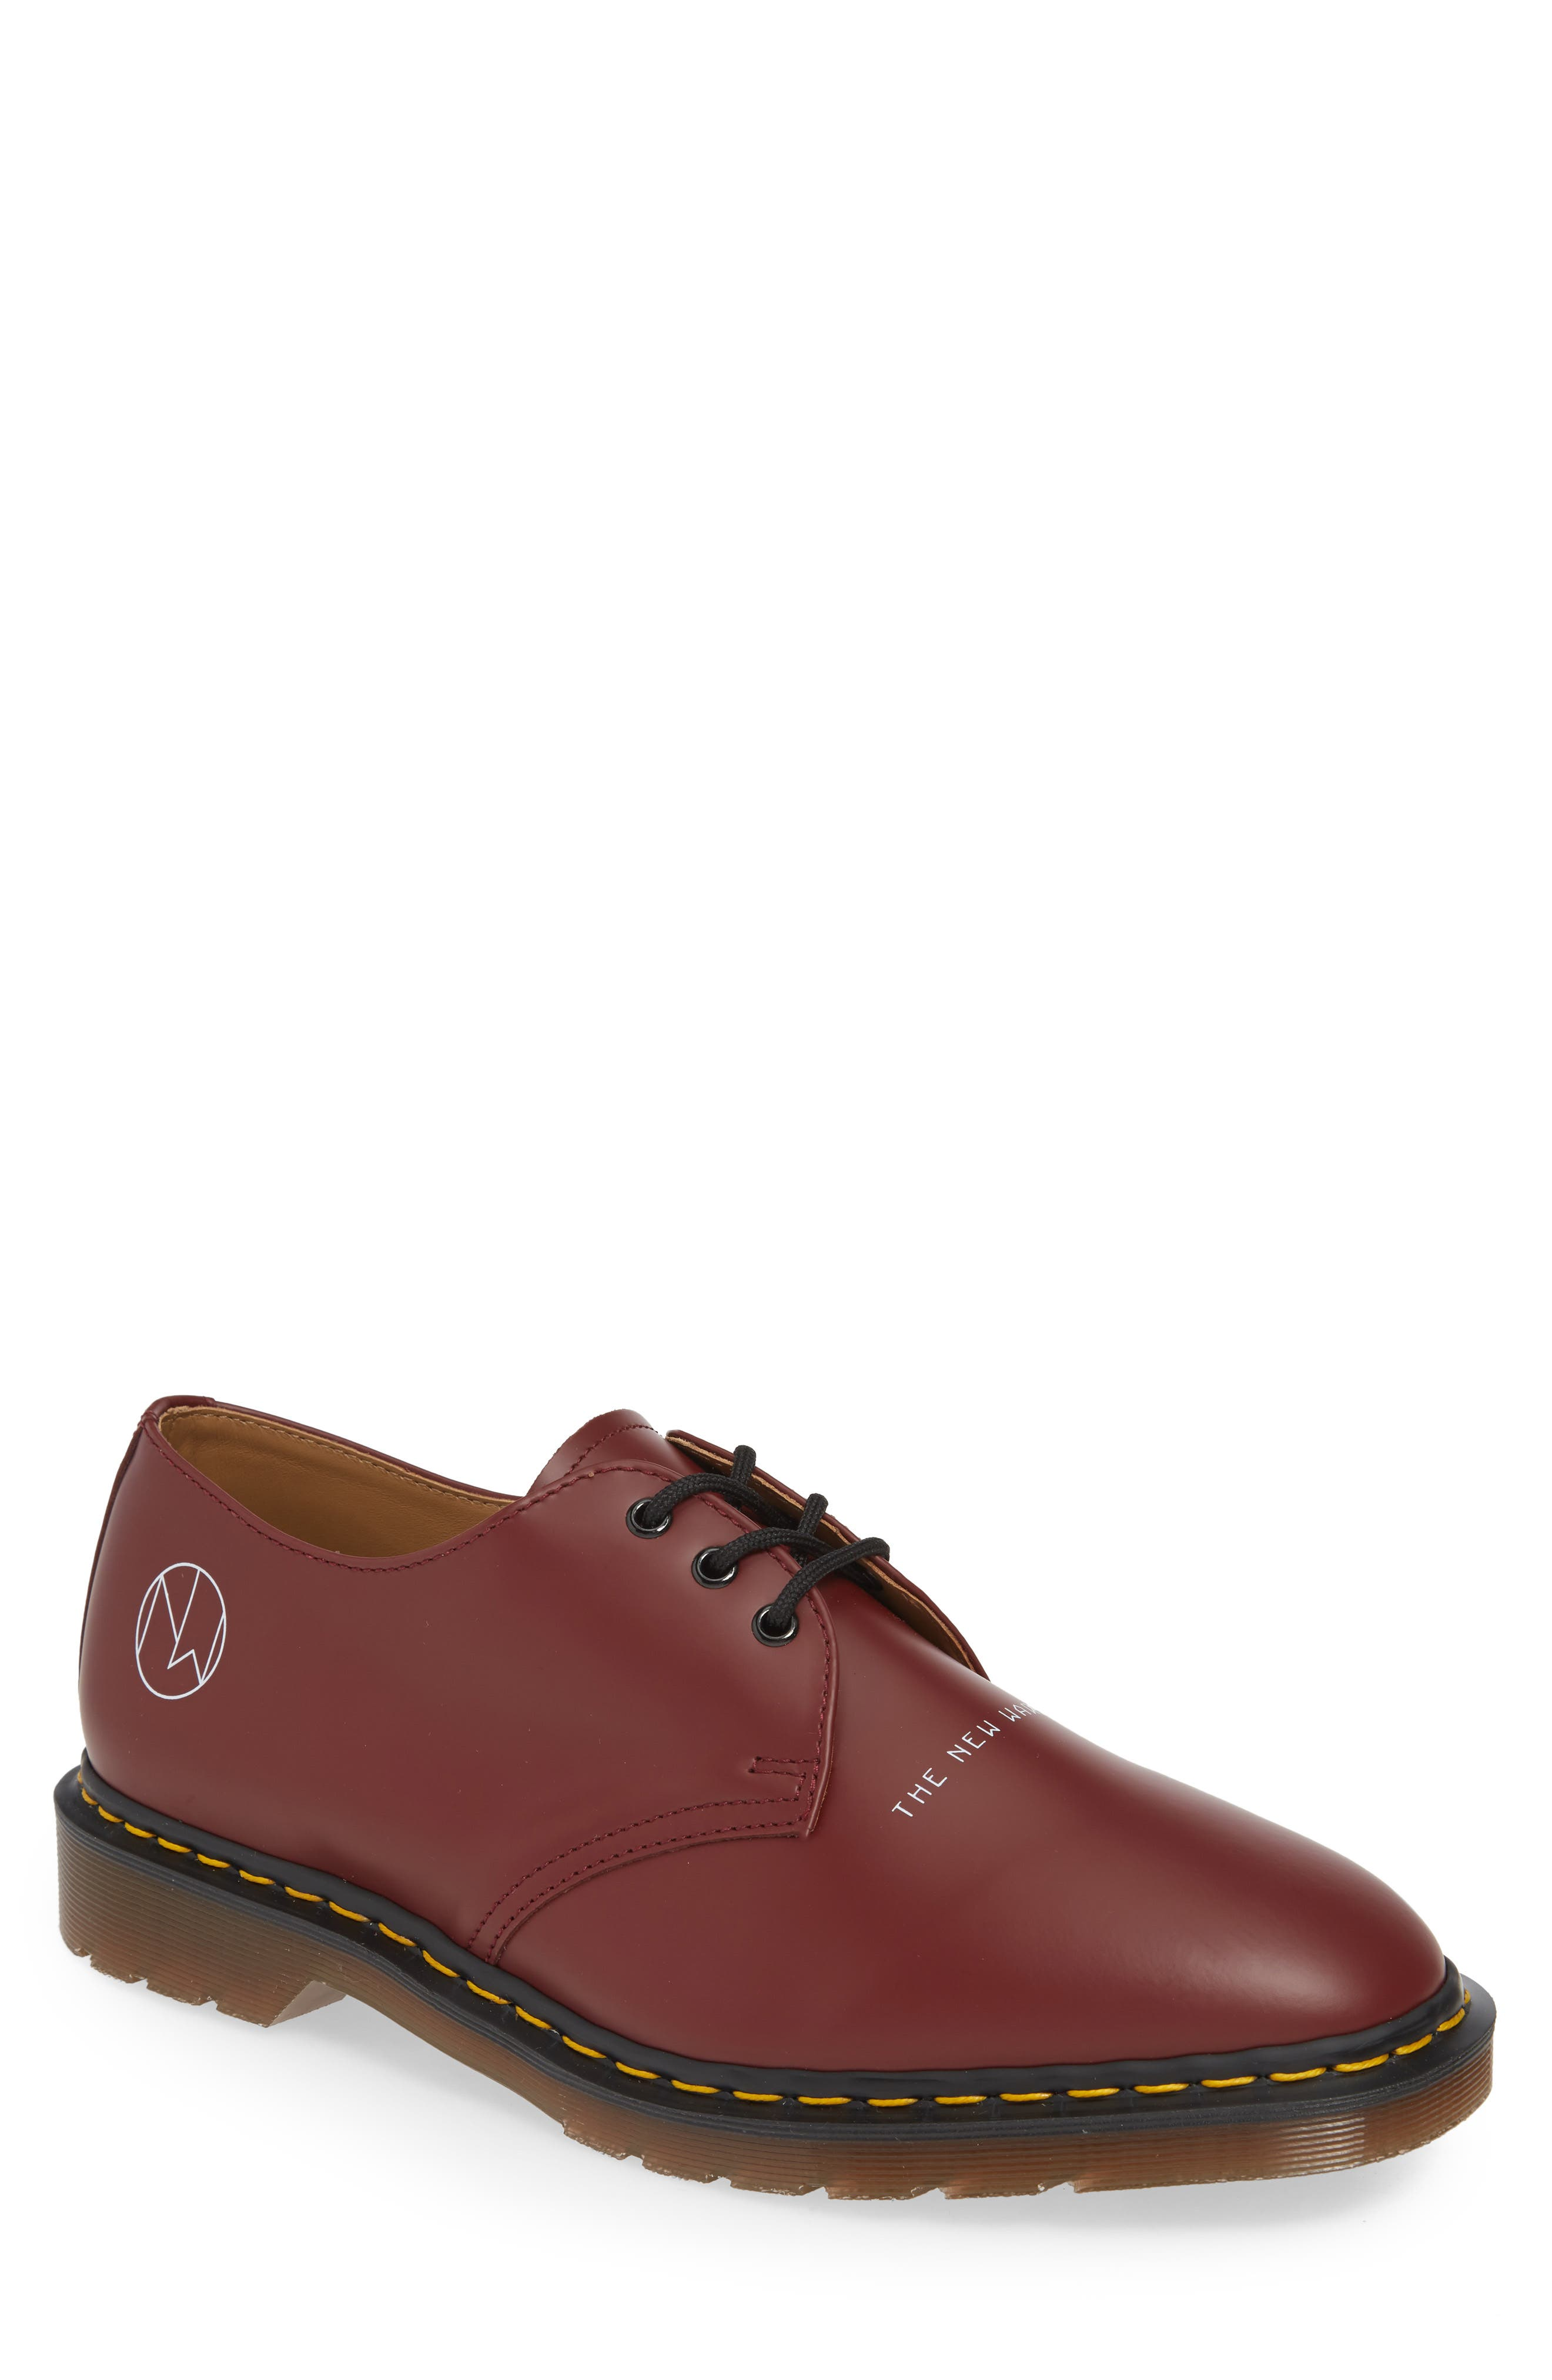 Dr. Martens X Undercover 1461 Derby, US / 13UK - Red